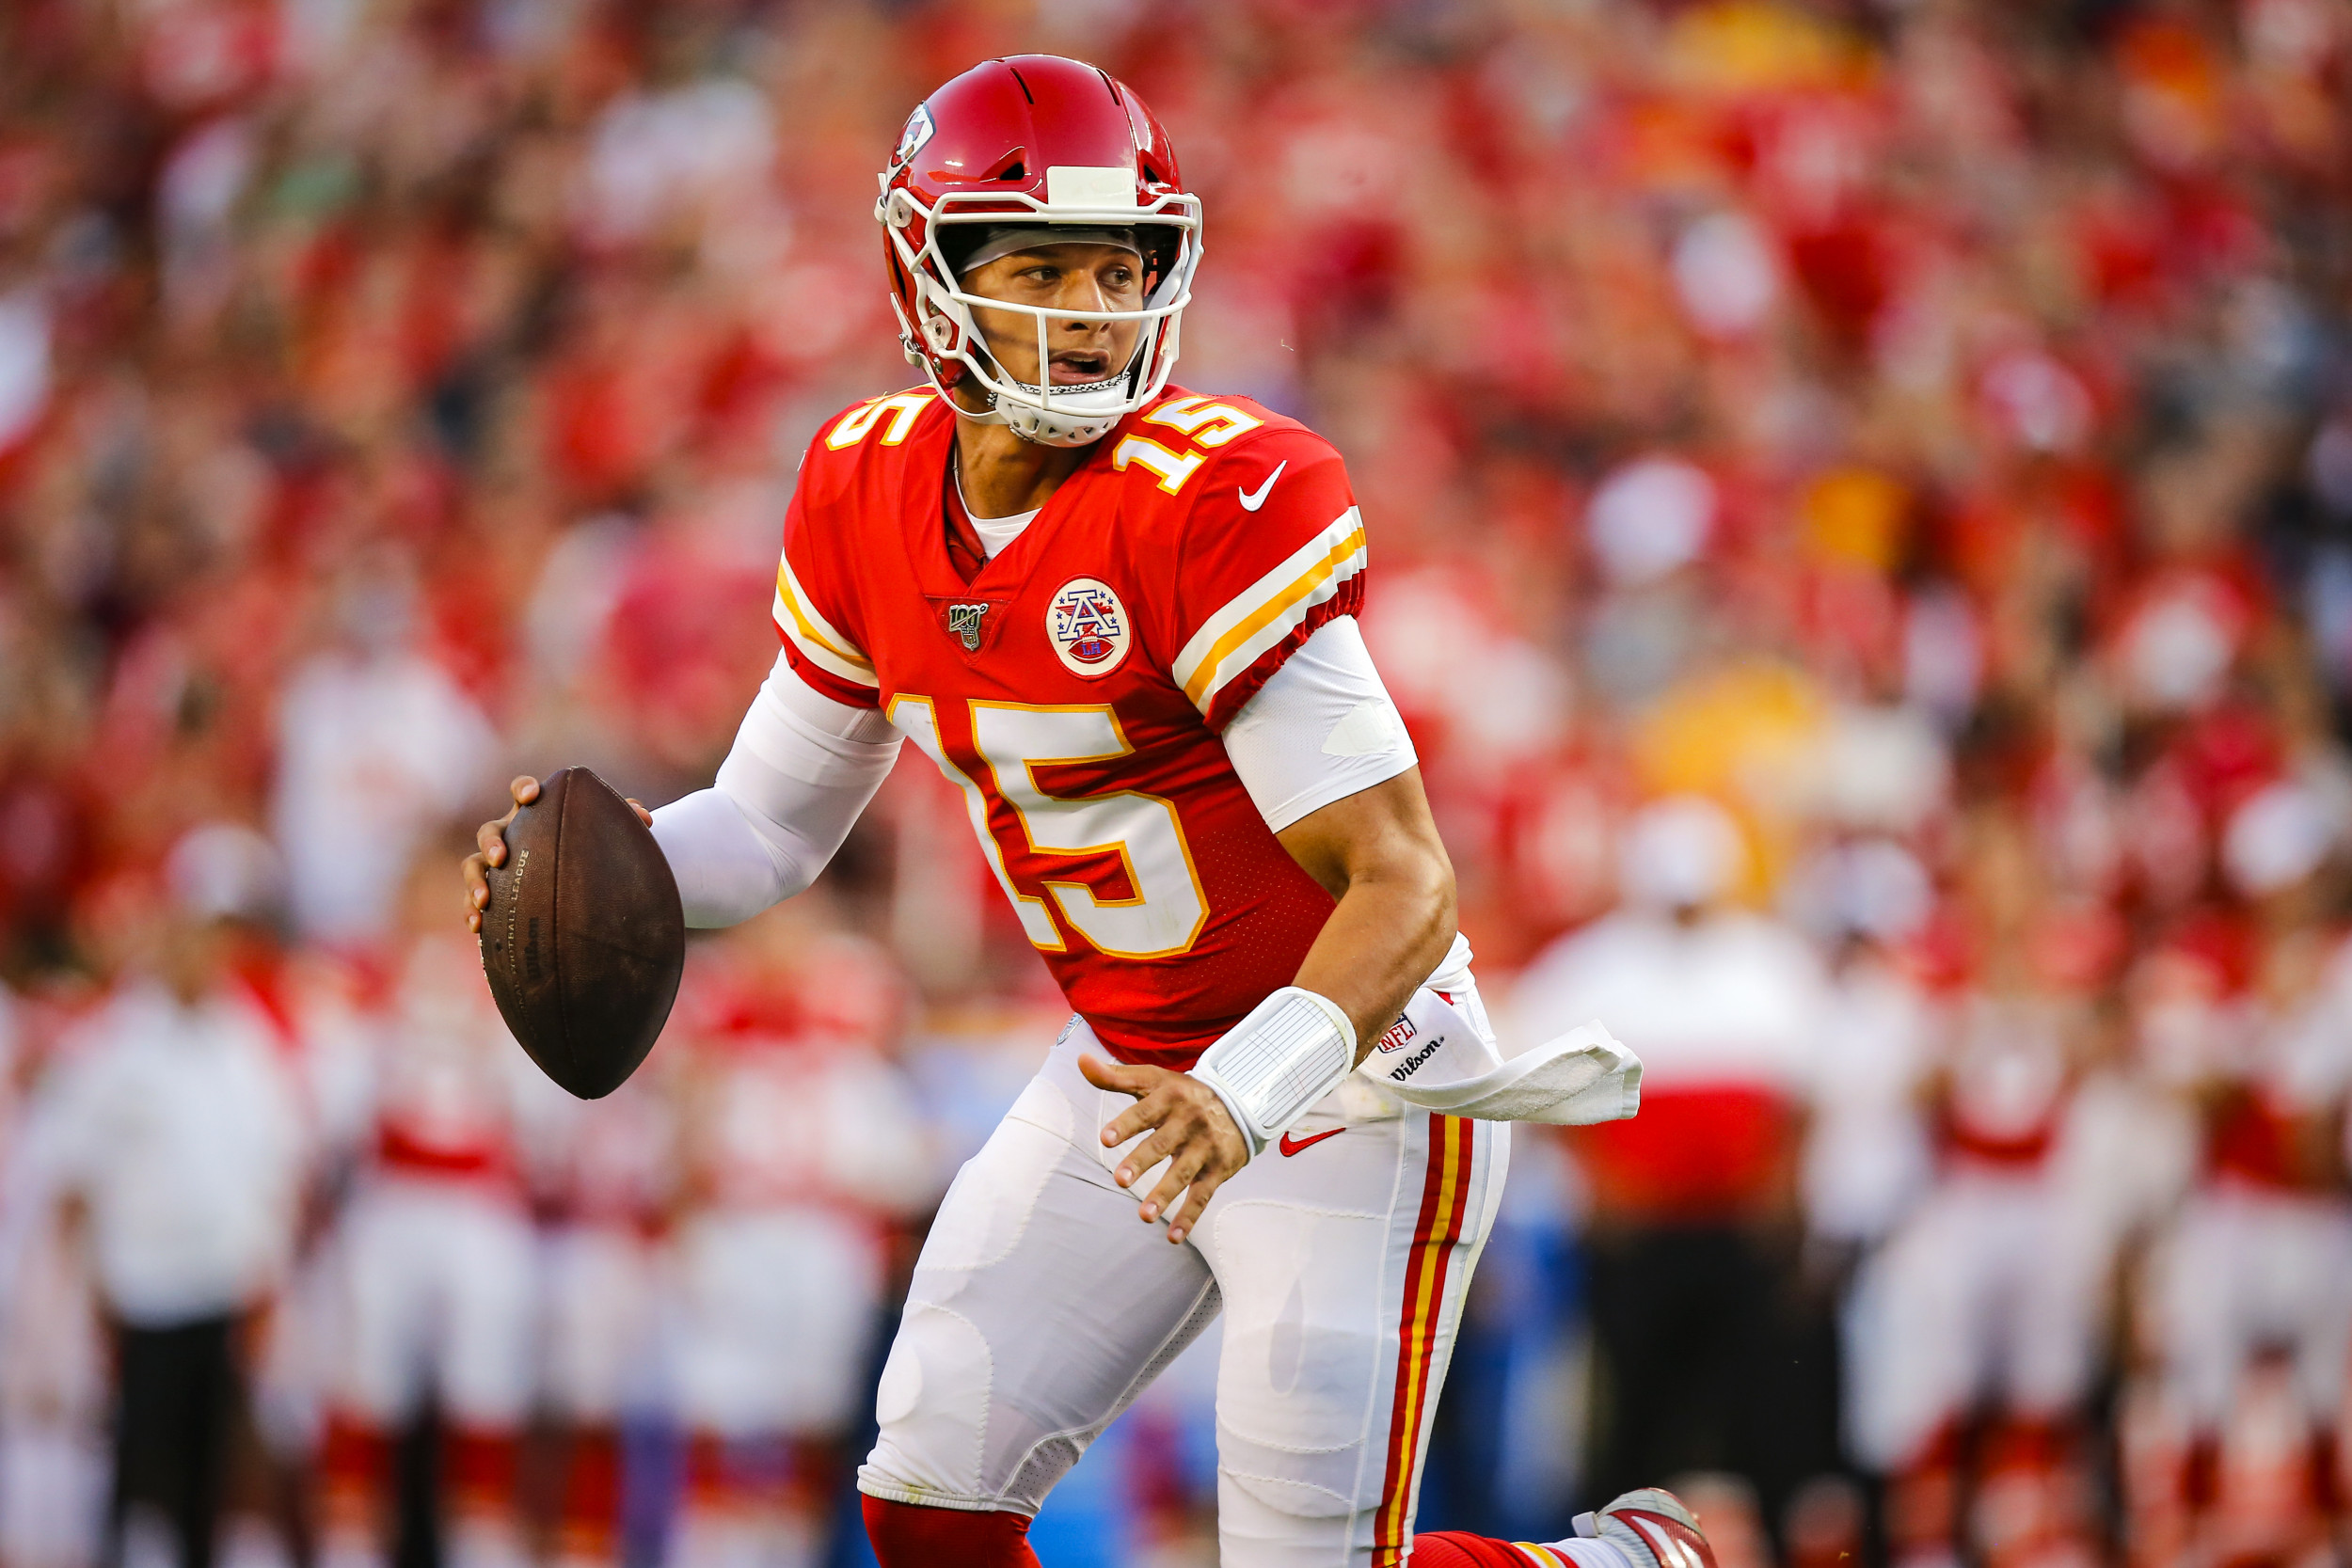 Nfl Preseason Where To Watch Kansas City Chiefs Vs